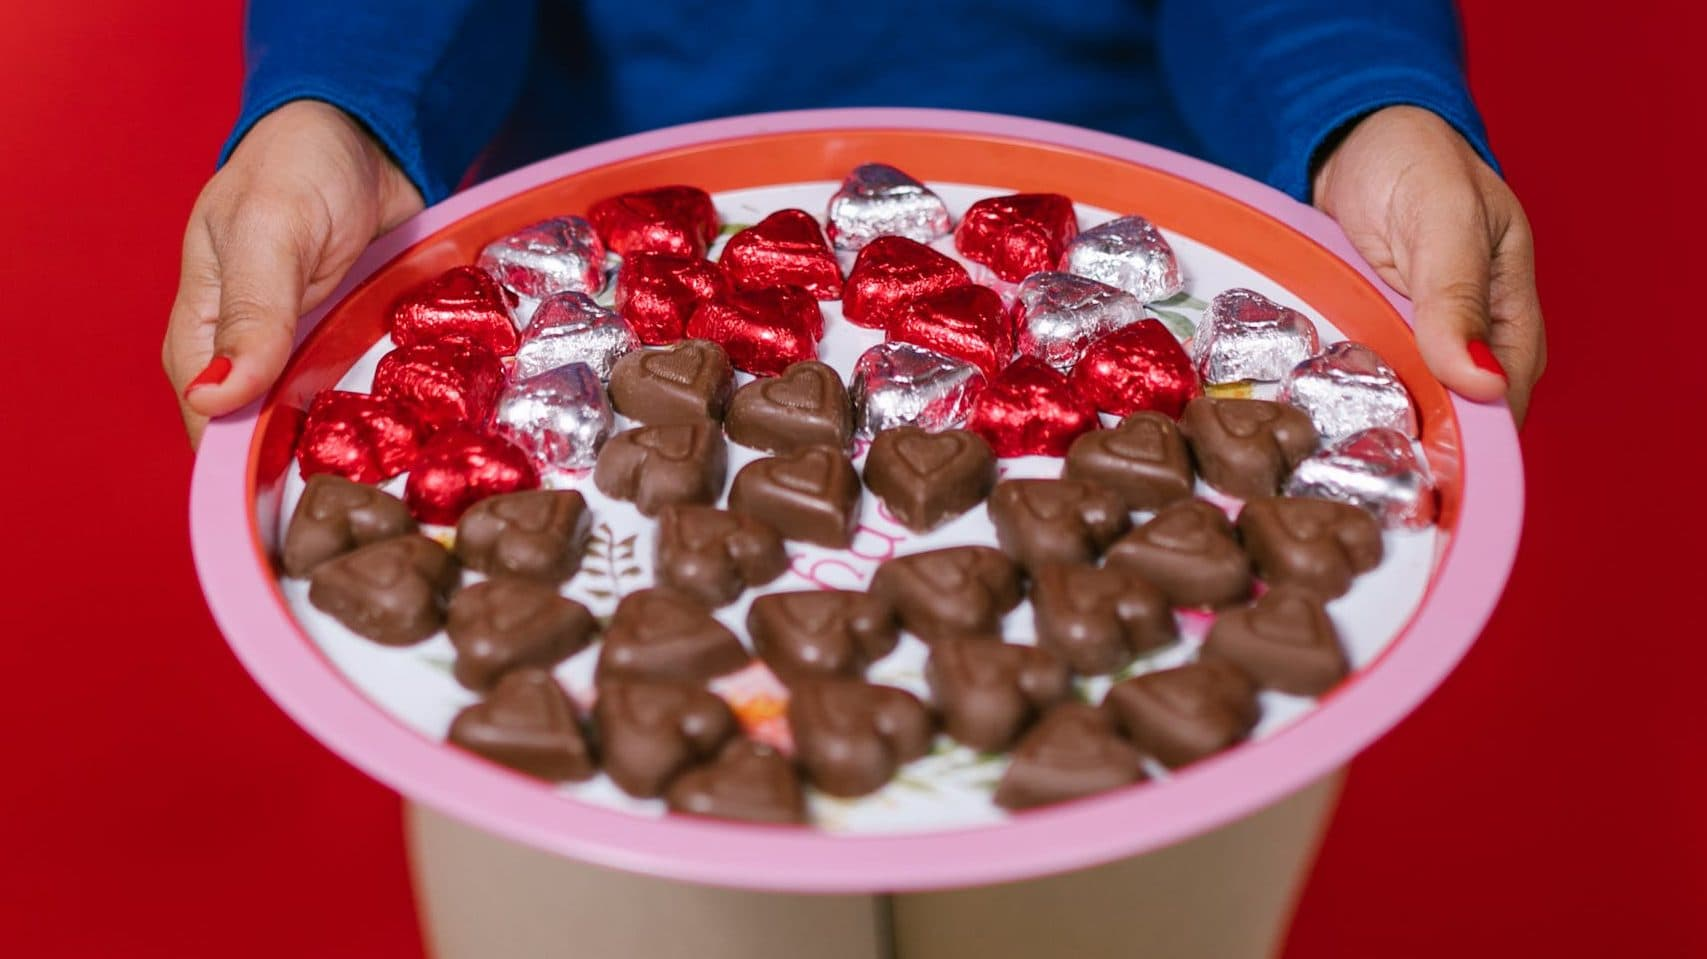 photo of person holding tray of heart shaped chocolates